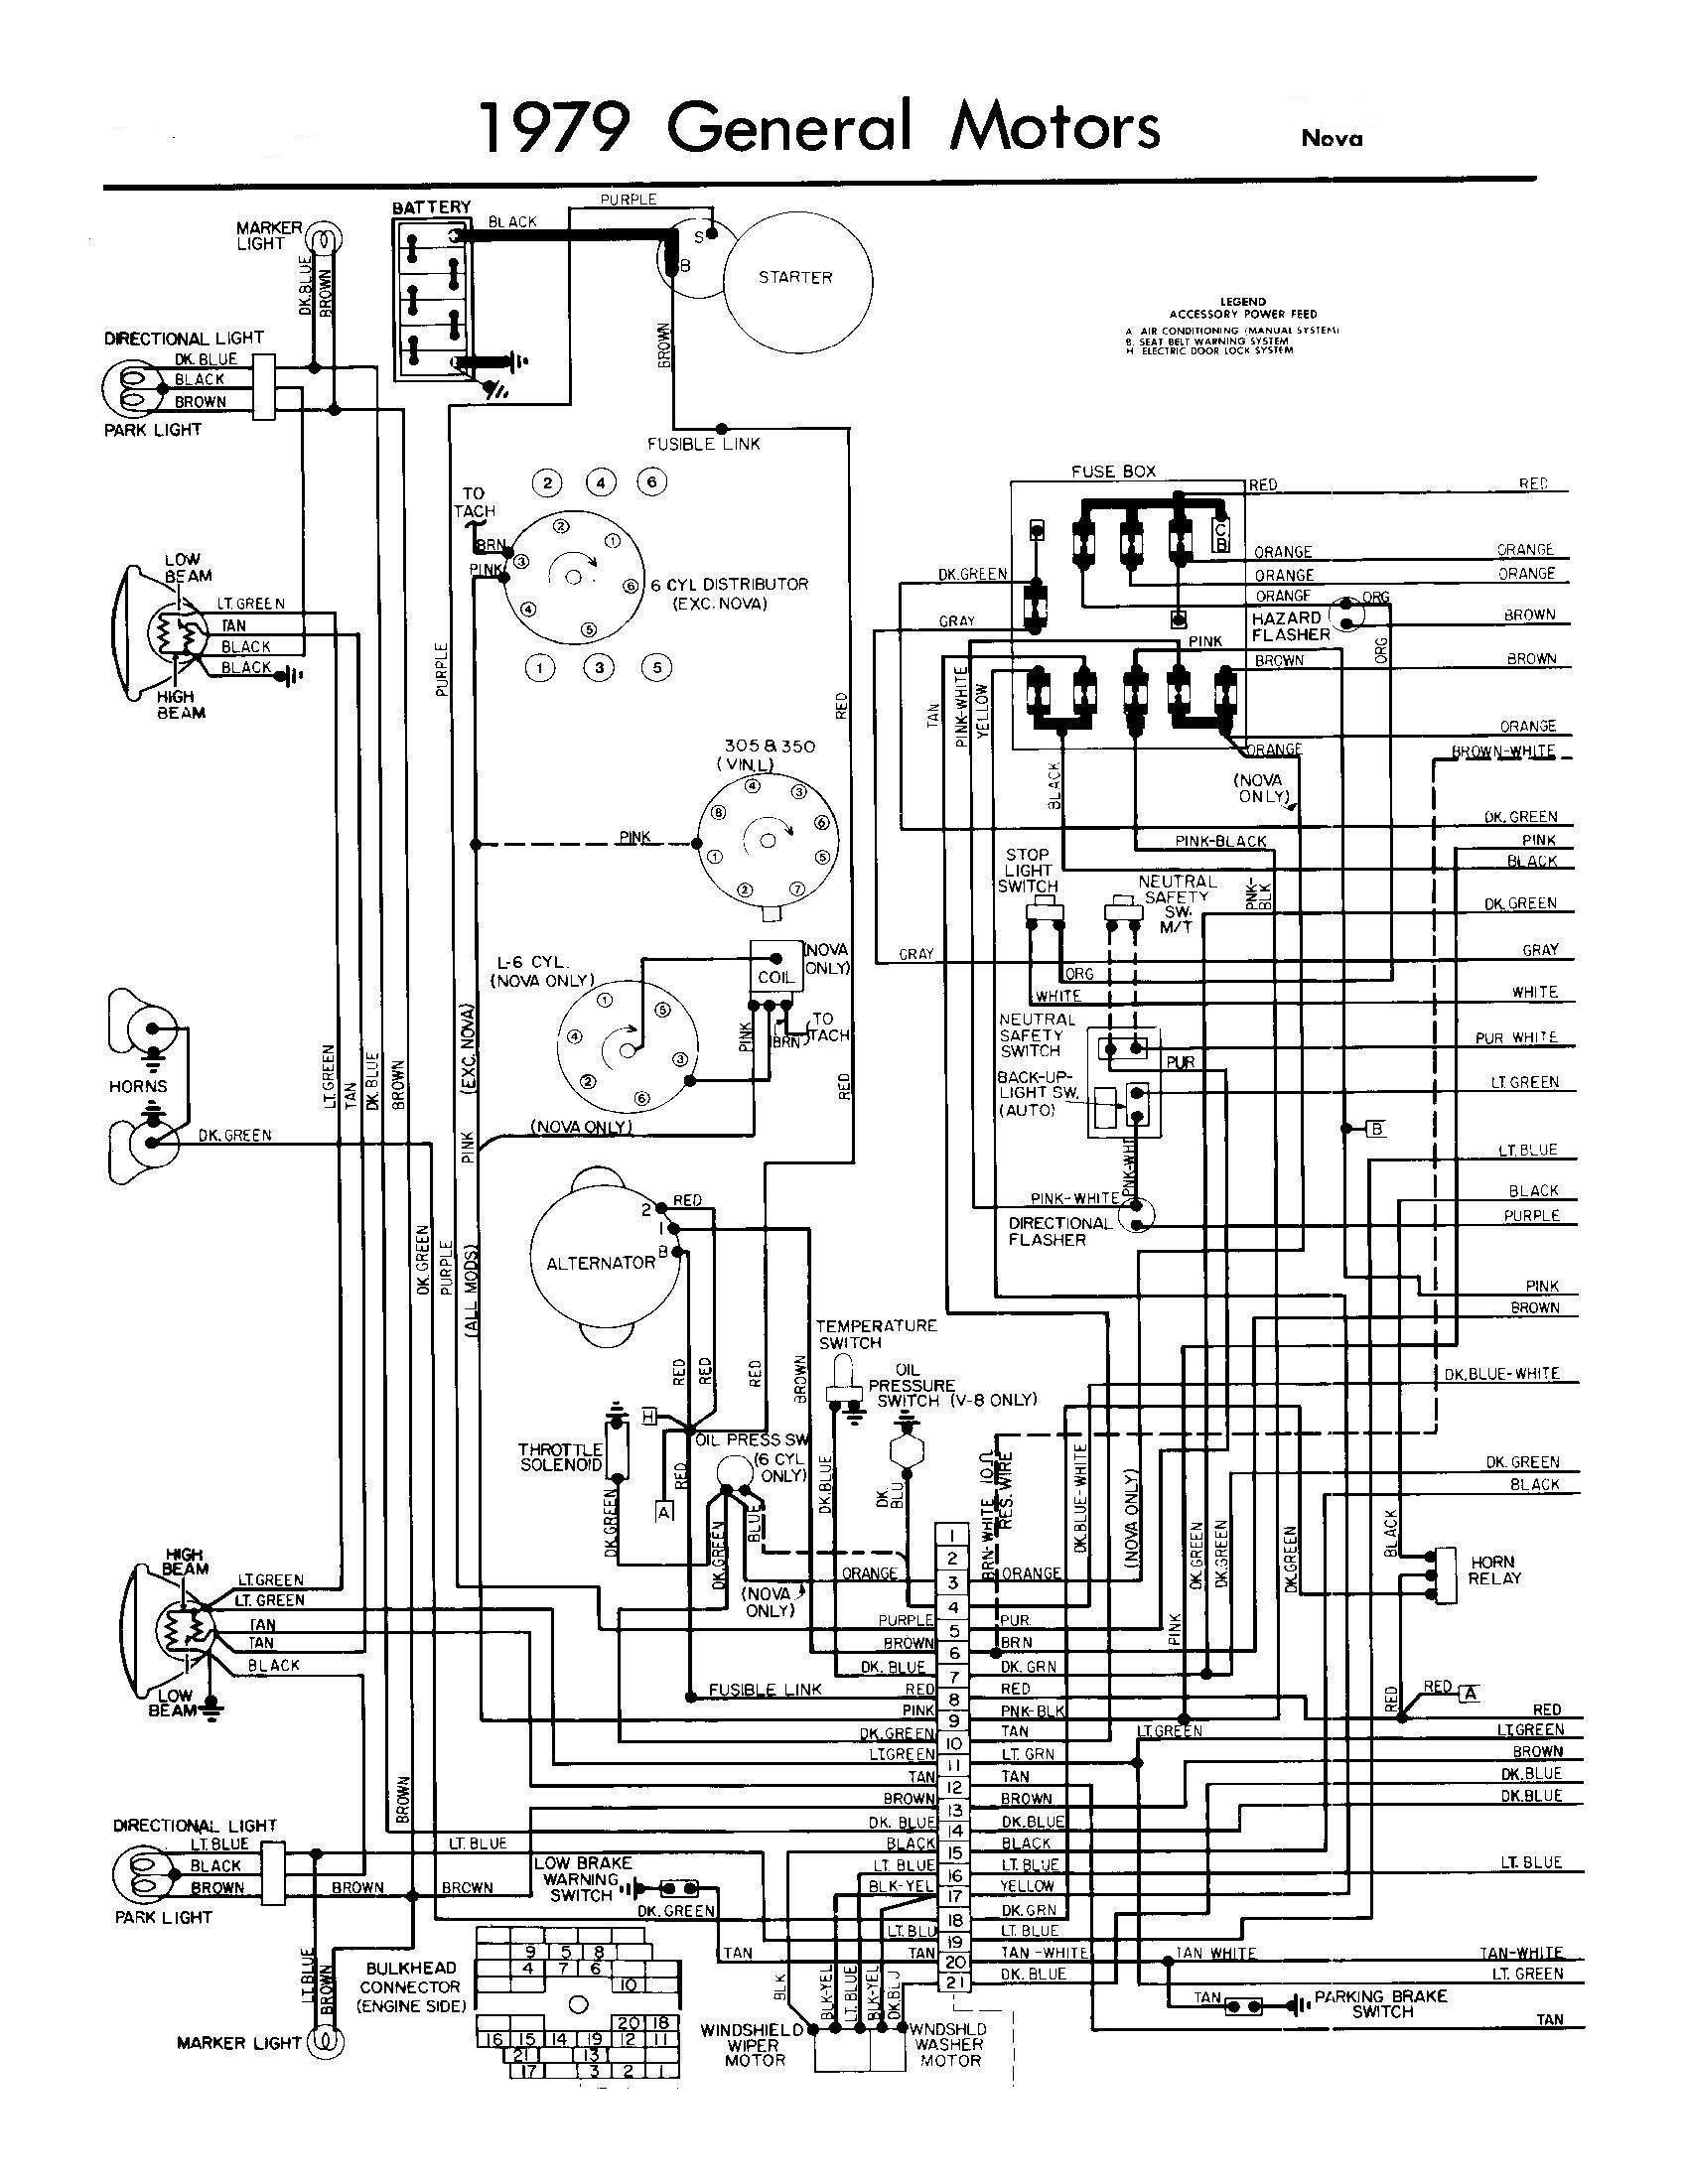 1996 audi a4 wiring diagram new audi a4 b5 wiring diagram pdf  with images  chevy trucks  new audi a4 b5 wiring diagram pdf  with